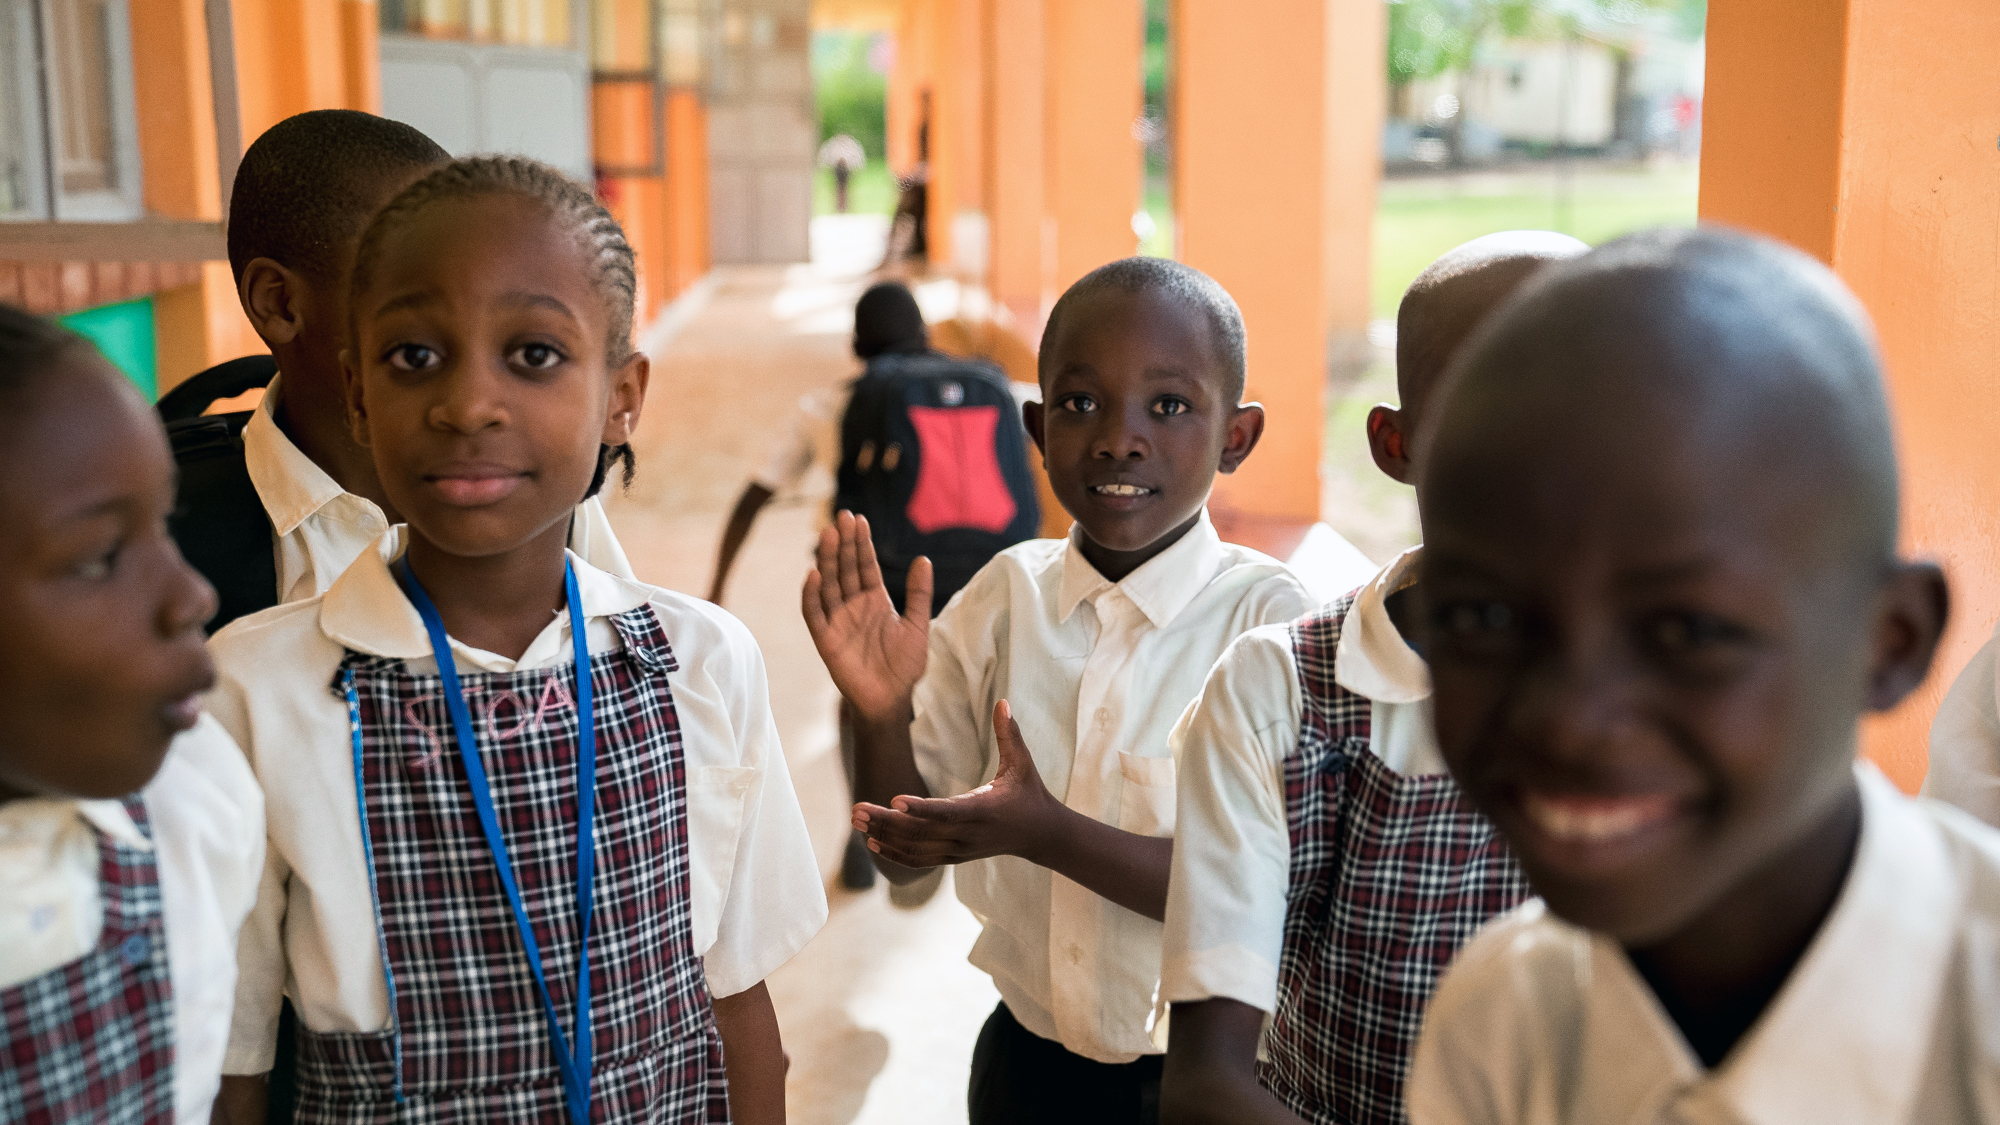 The Nambale Magnet School Students tuition fees